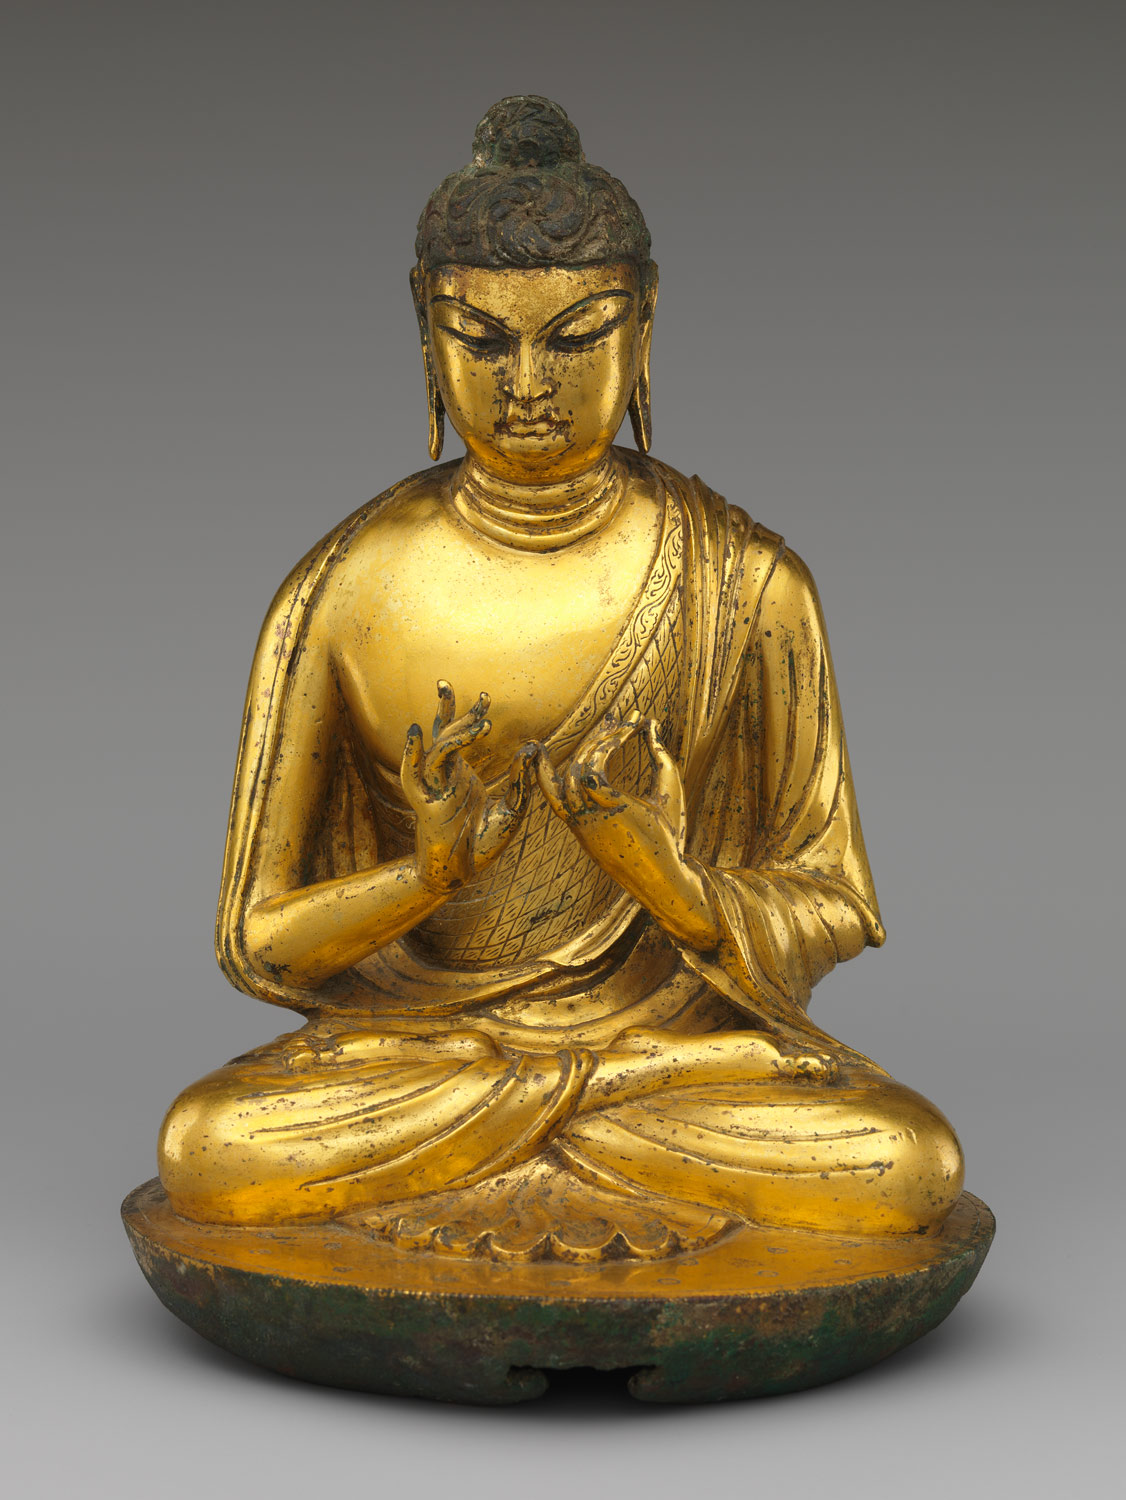 buddhism in east asian culture history essay The following essay will examine buddhism in southeast asia in terms of  of study in buddhist history,  reginald le may's the culture of south-east asia .